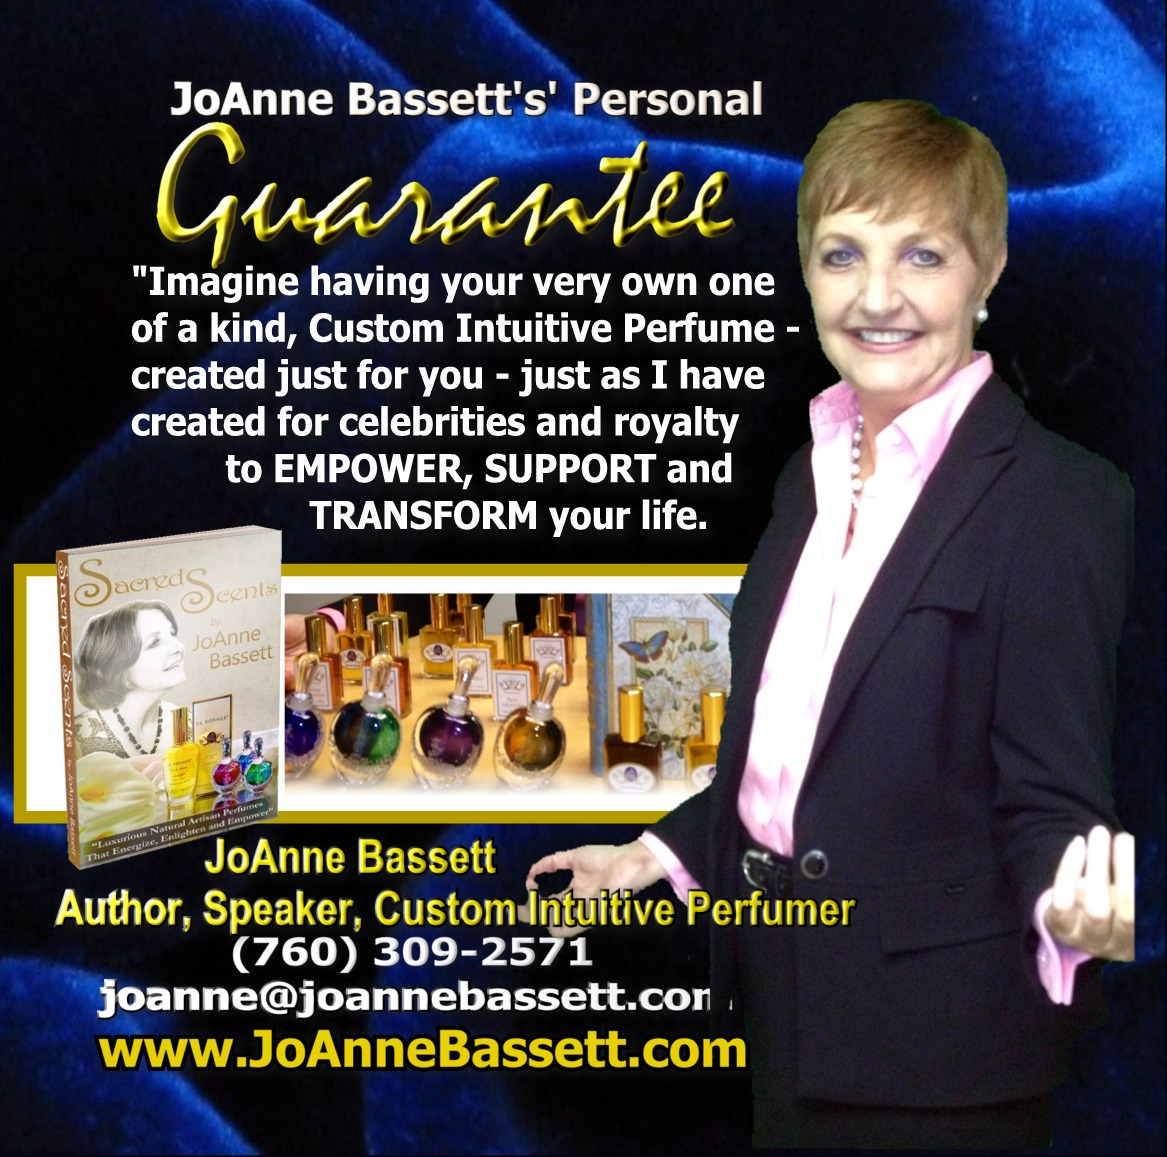 JoAnne Bassett, Custom Bespoke Natural Perfumer, Author, Teacher, Speaker